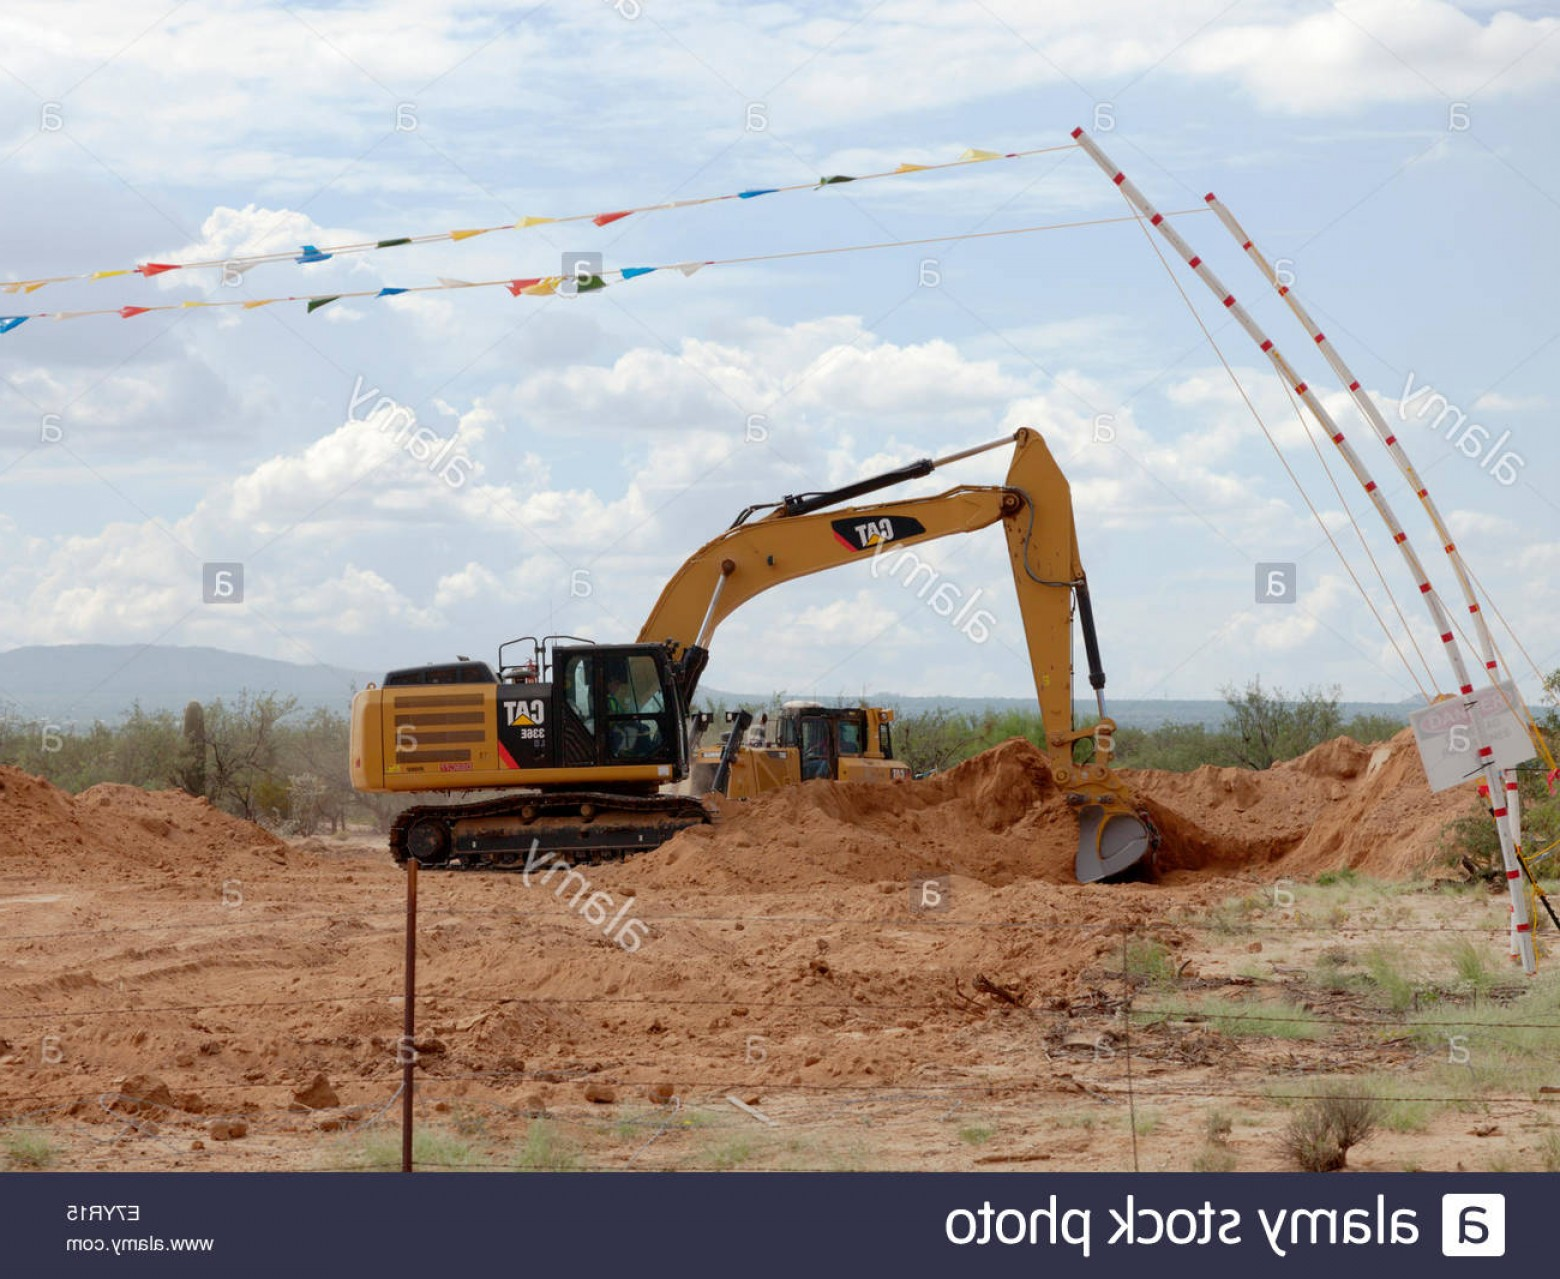 Caterpillar Trackhoe Vector: Stock Photo Caterpillar Cat E Excavator Digging Dirt Bucket Full Arizona Operator